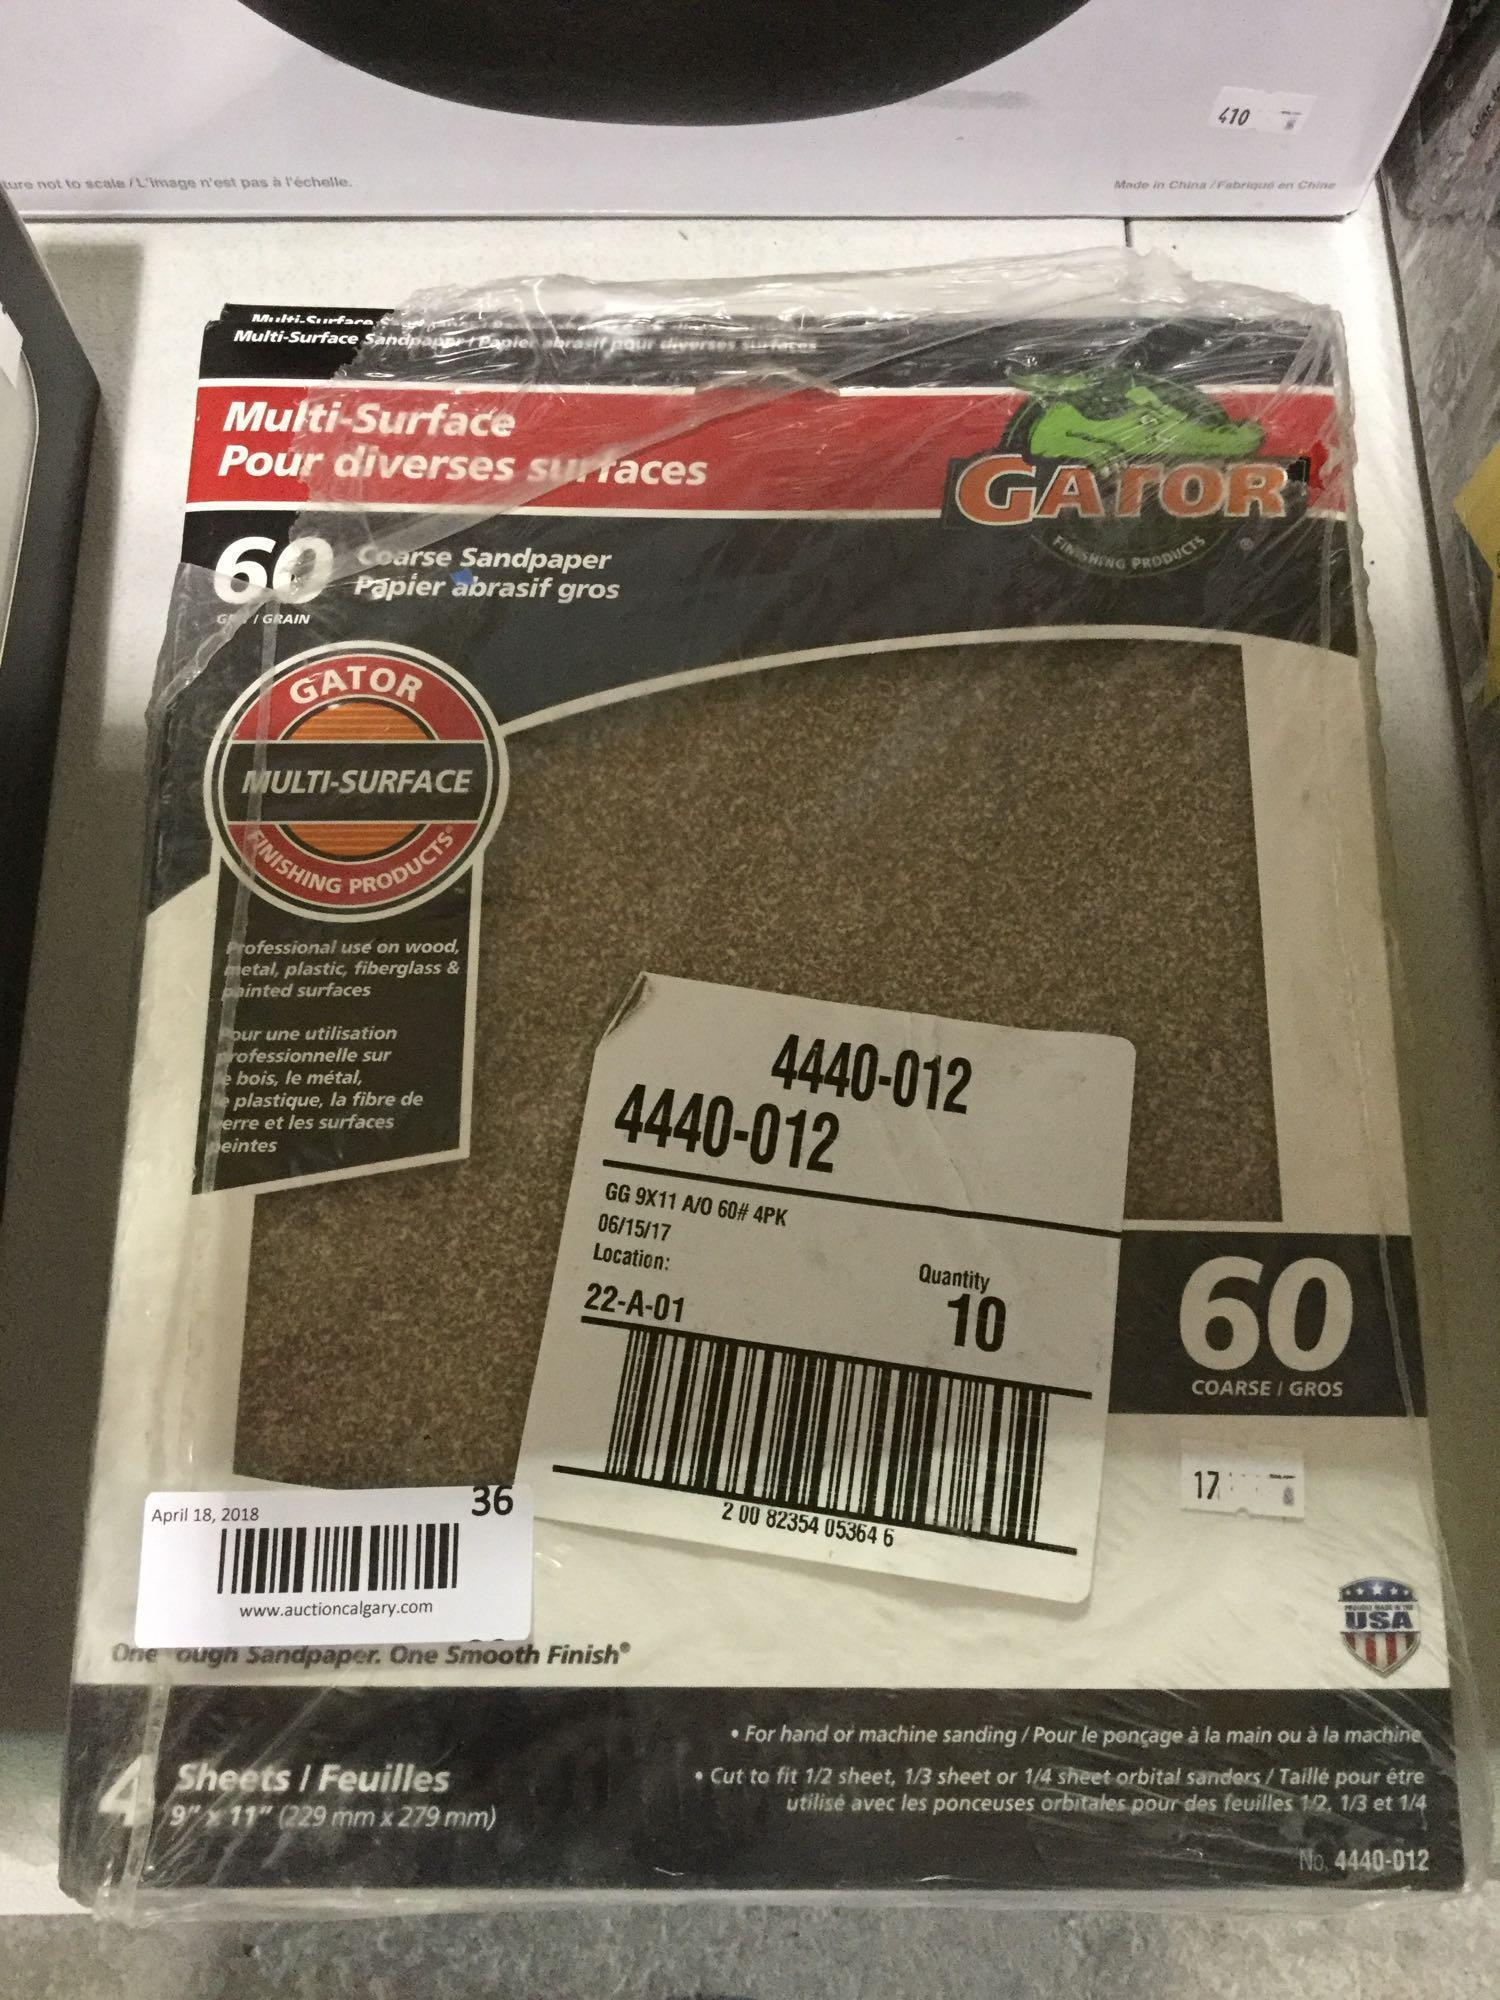 Lot 36 - Gator Multi-surface 60 Grain Coarse Sandpaper - 9 x 4 sheets